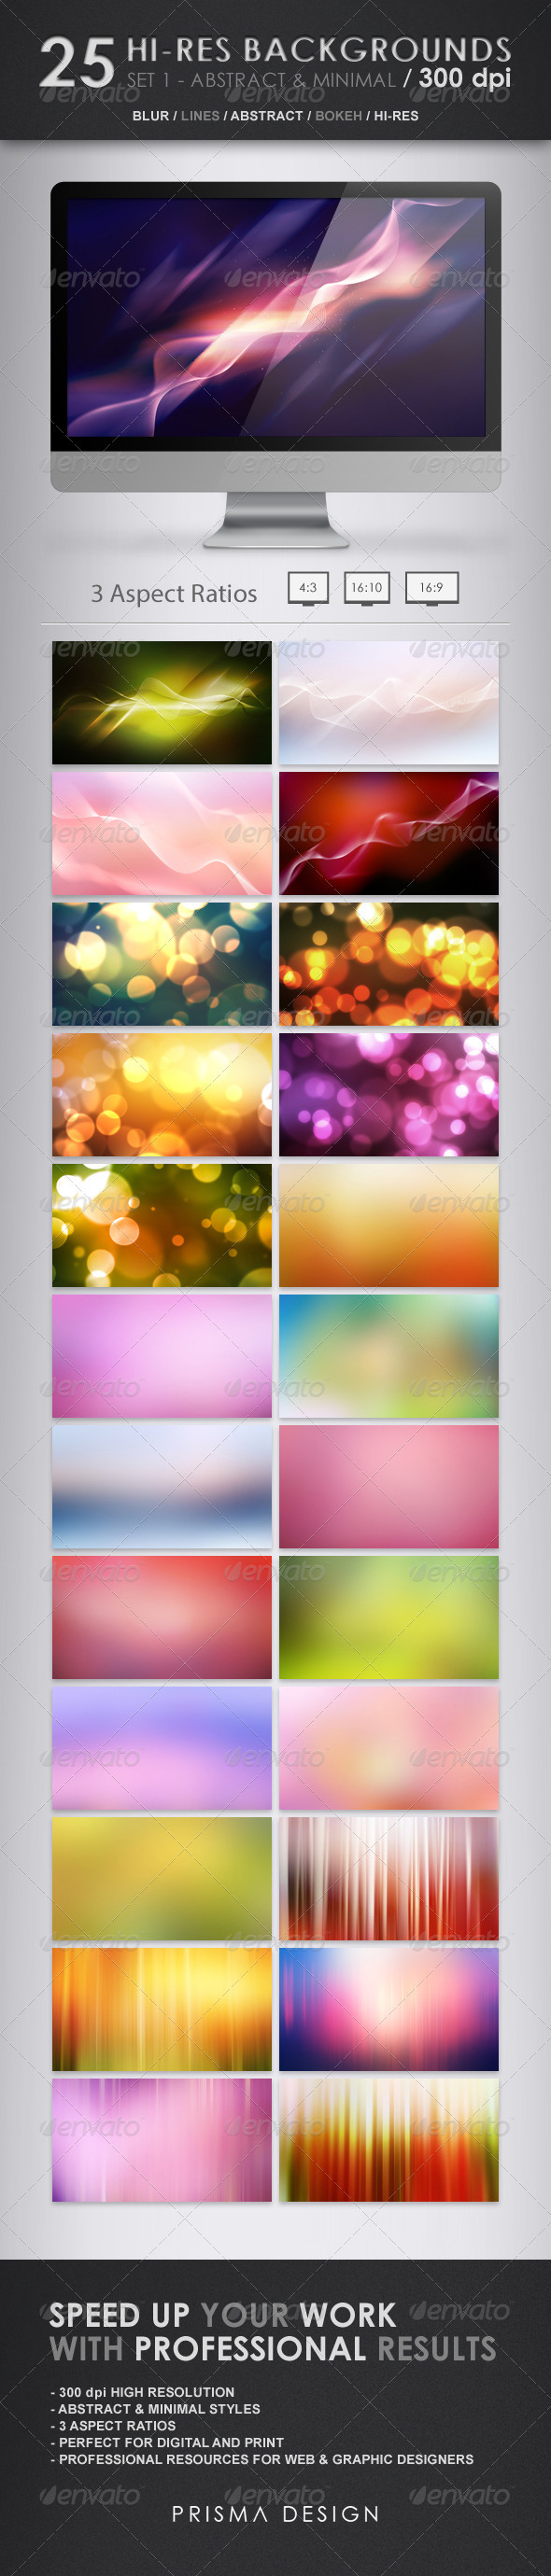 25 Hi-Res Backgrounds - Abstract &amp; Minimal - Abstract Backgrounds